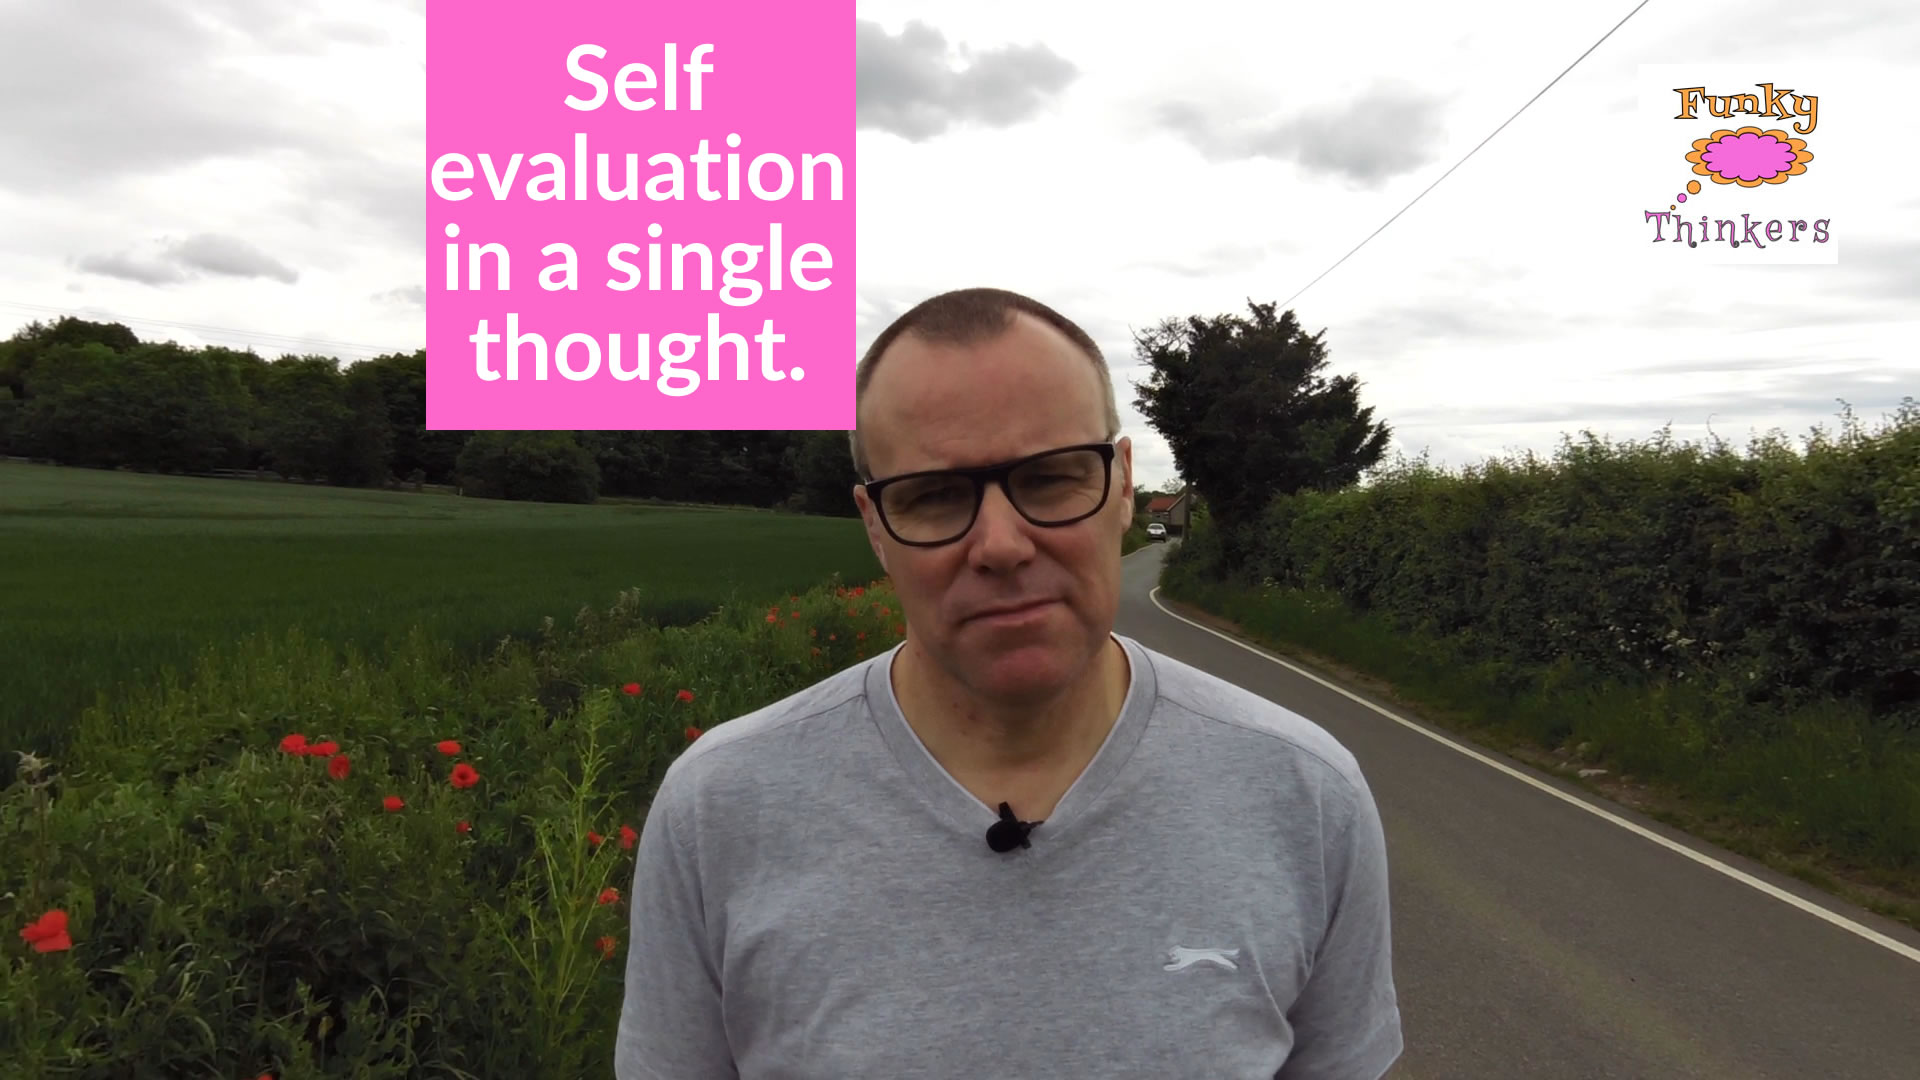 self evaluation in a single thought